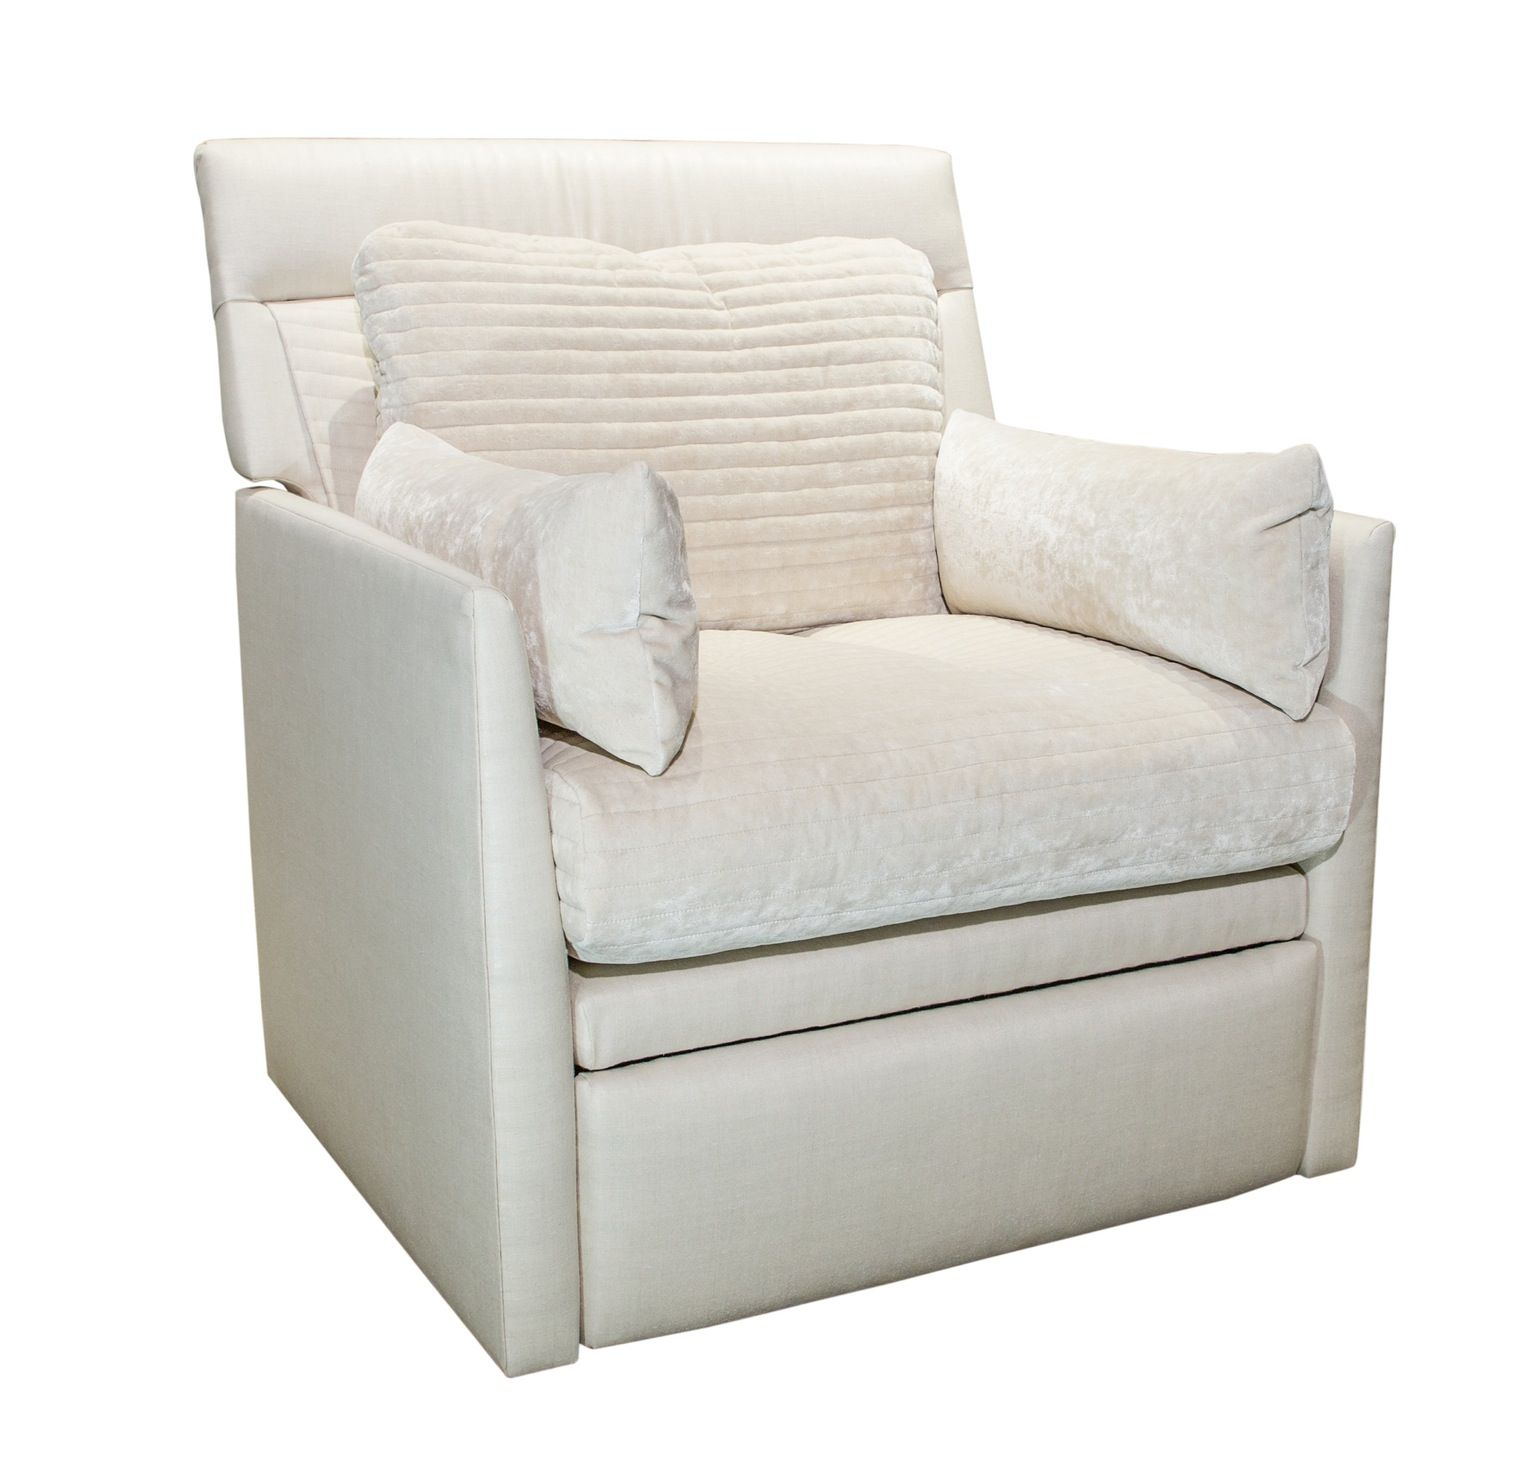 High Back Recliner Traditional, Leather, Upholstery Fabric, Wood, Seating  By Saladino Furniture